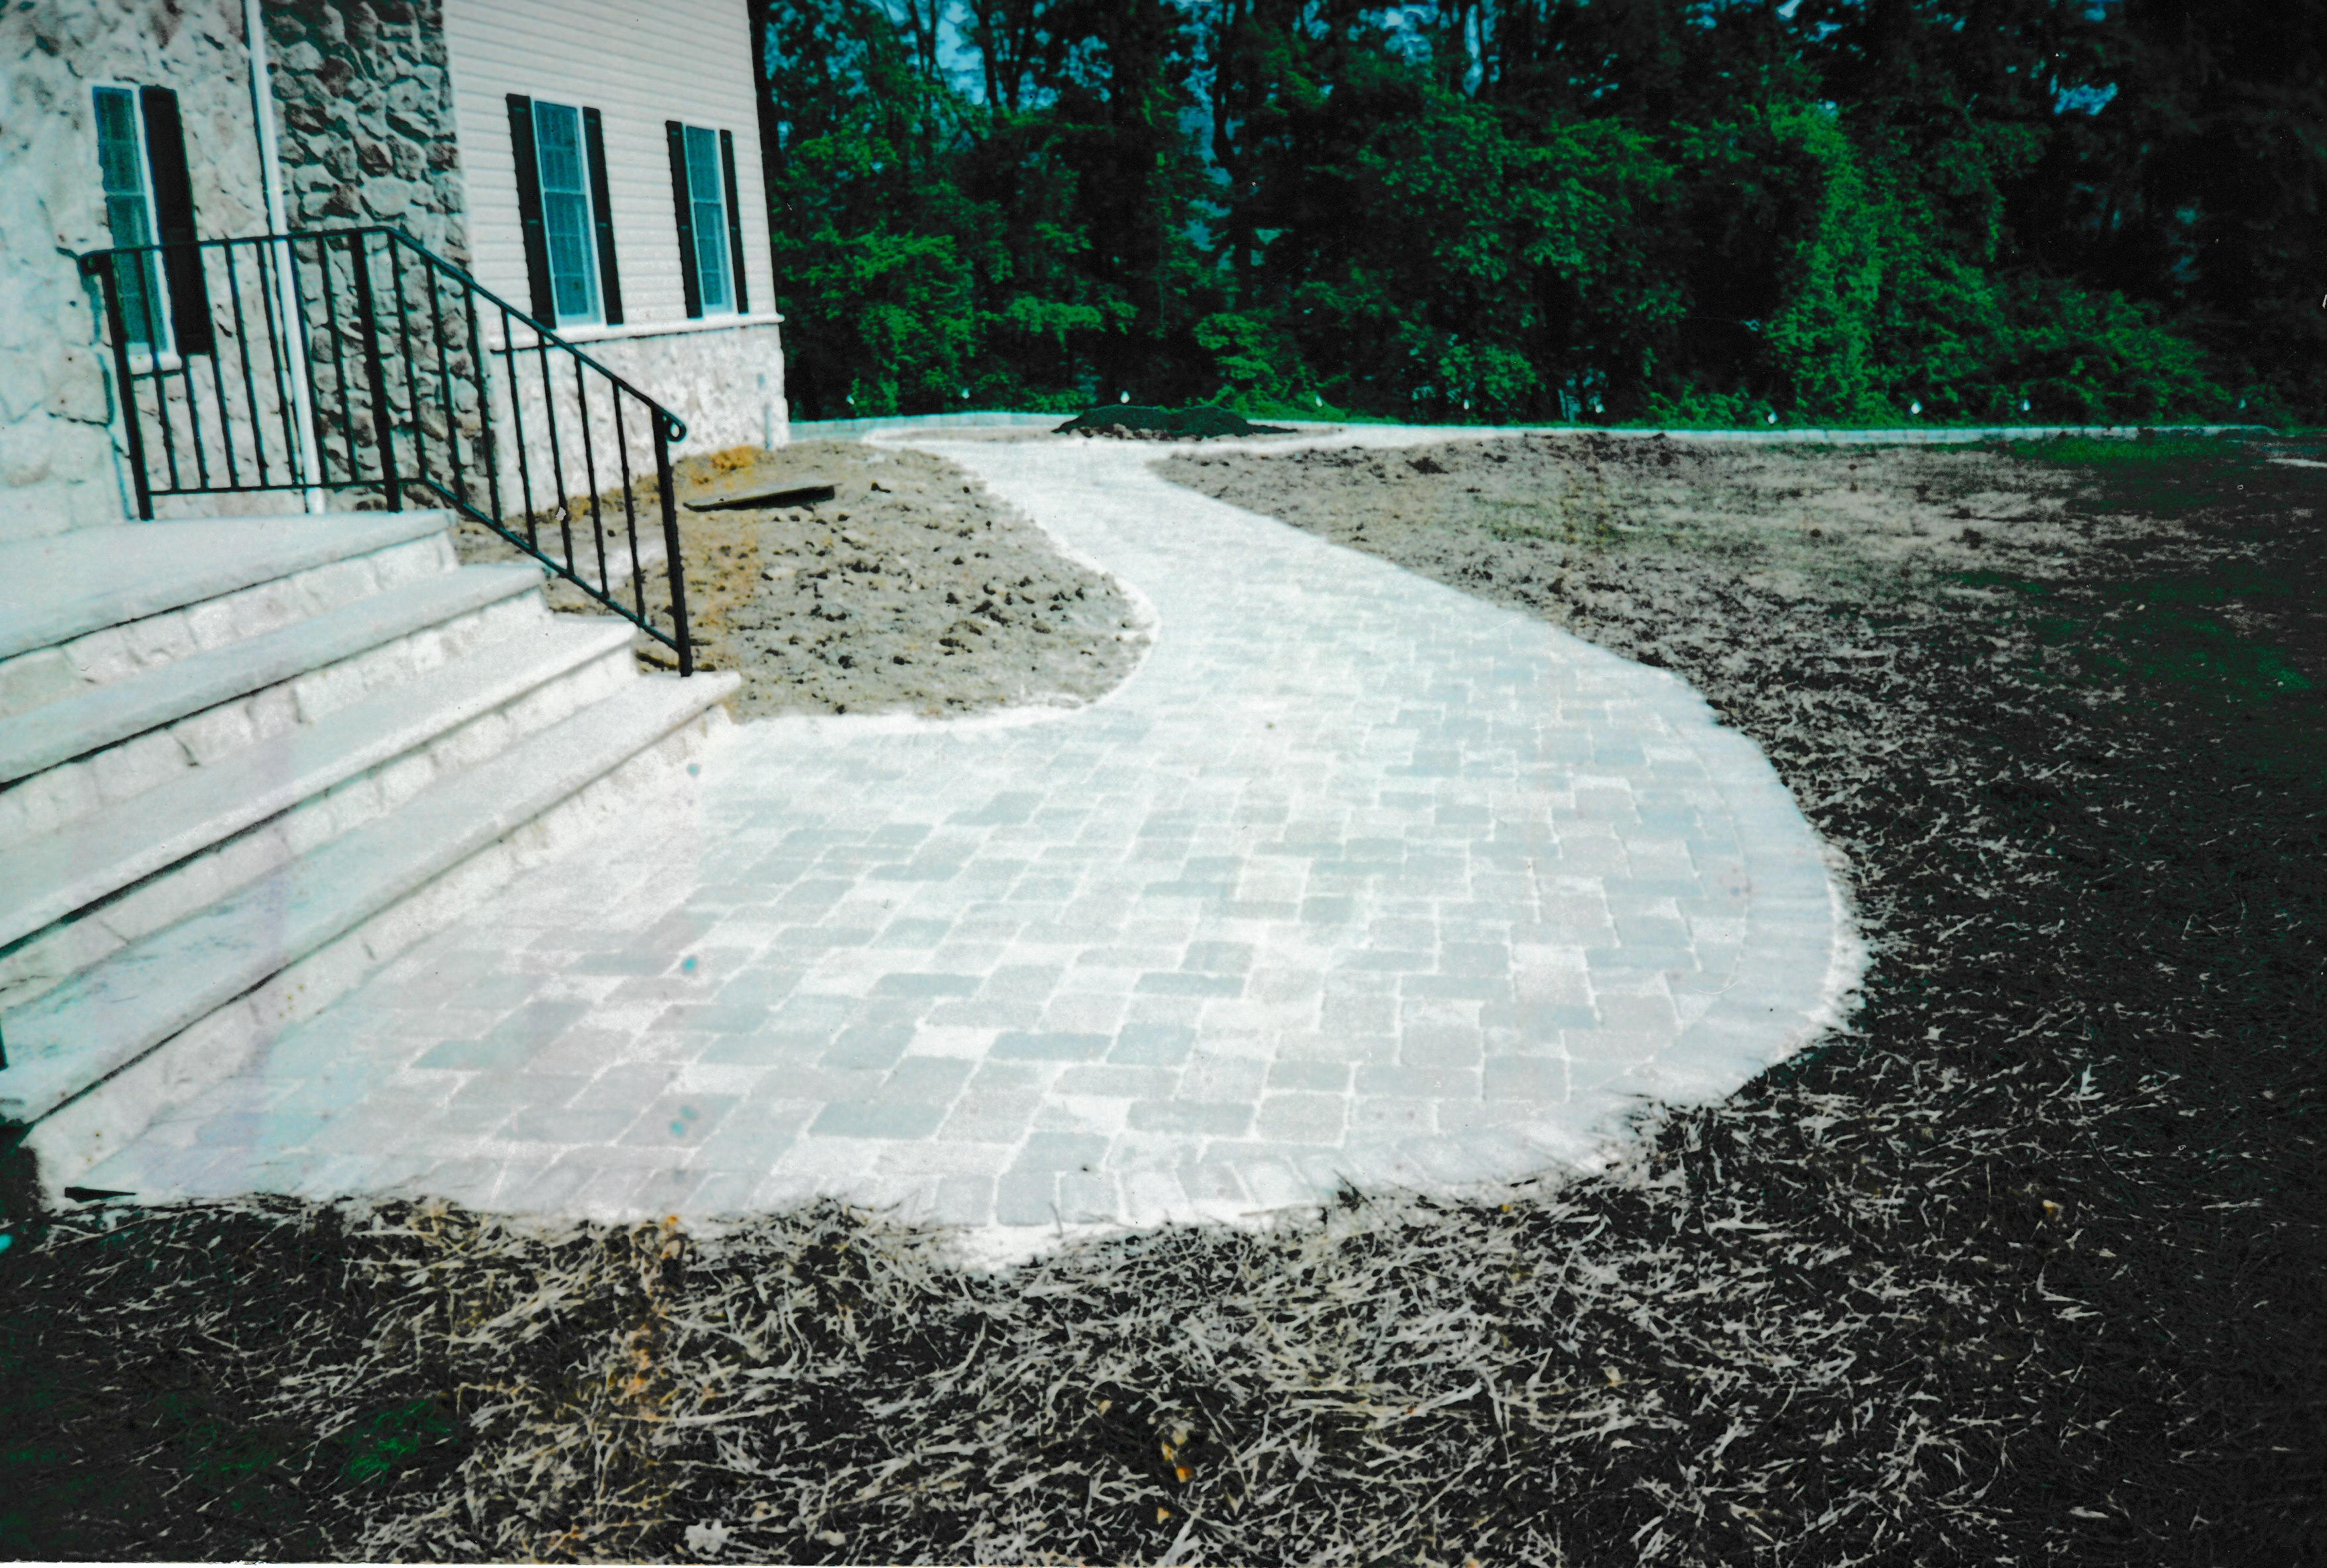 Finished brick walkway leading to front stairs of house